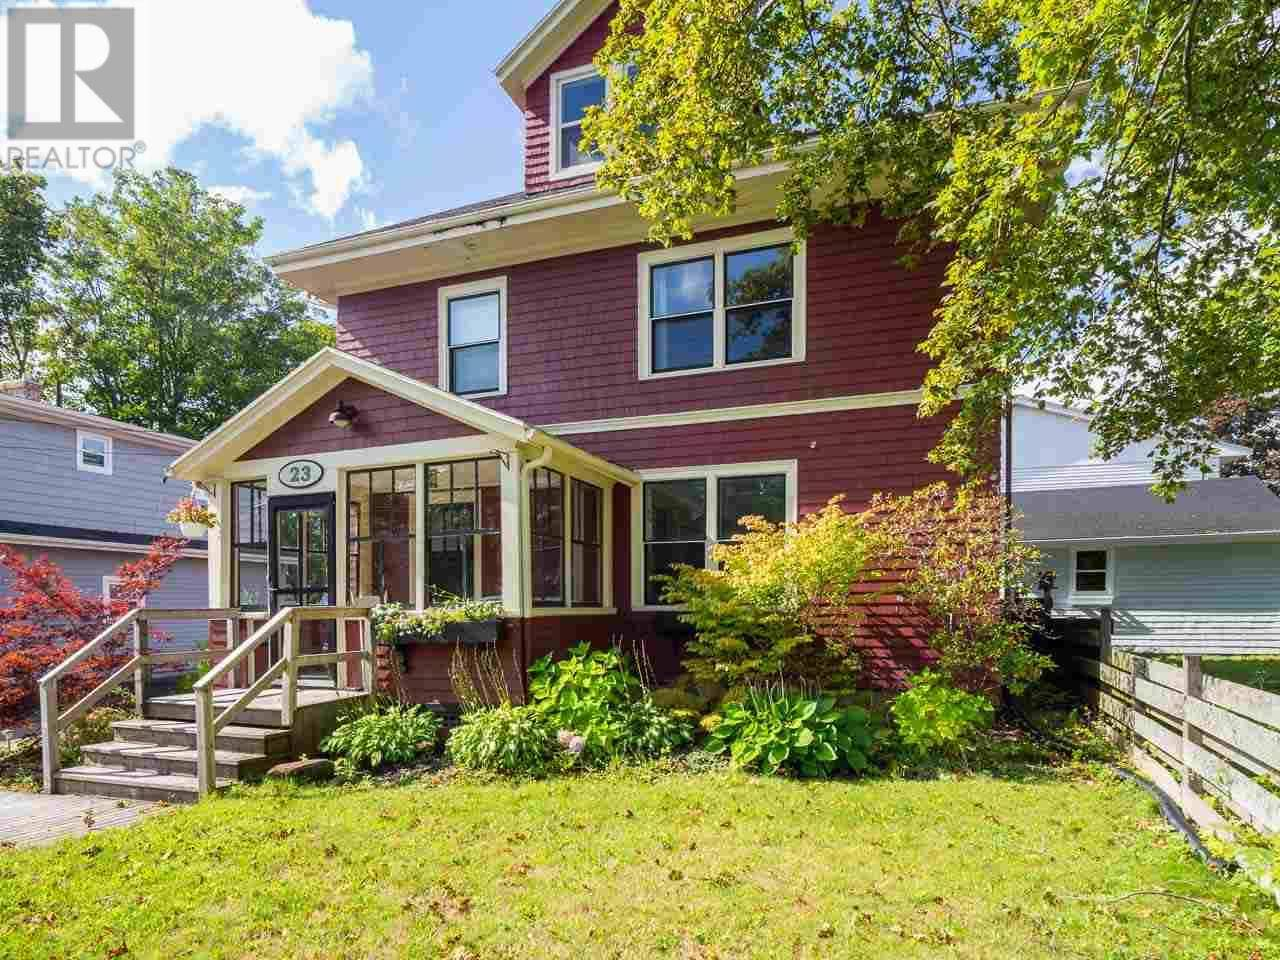 House for sale at 23 River Rd North Charlottetown Prince Edward Island - MLS: 202001875